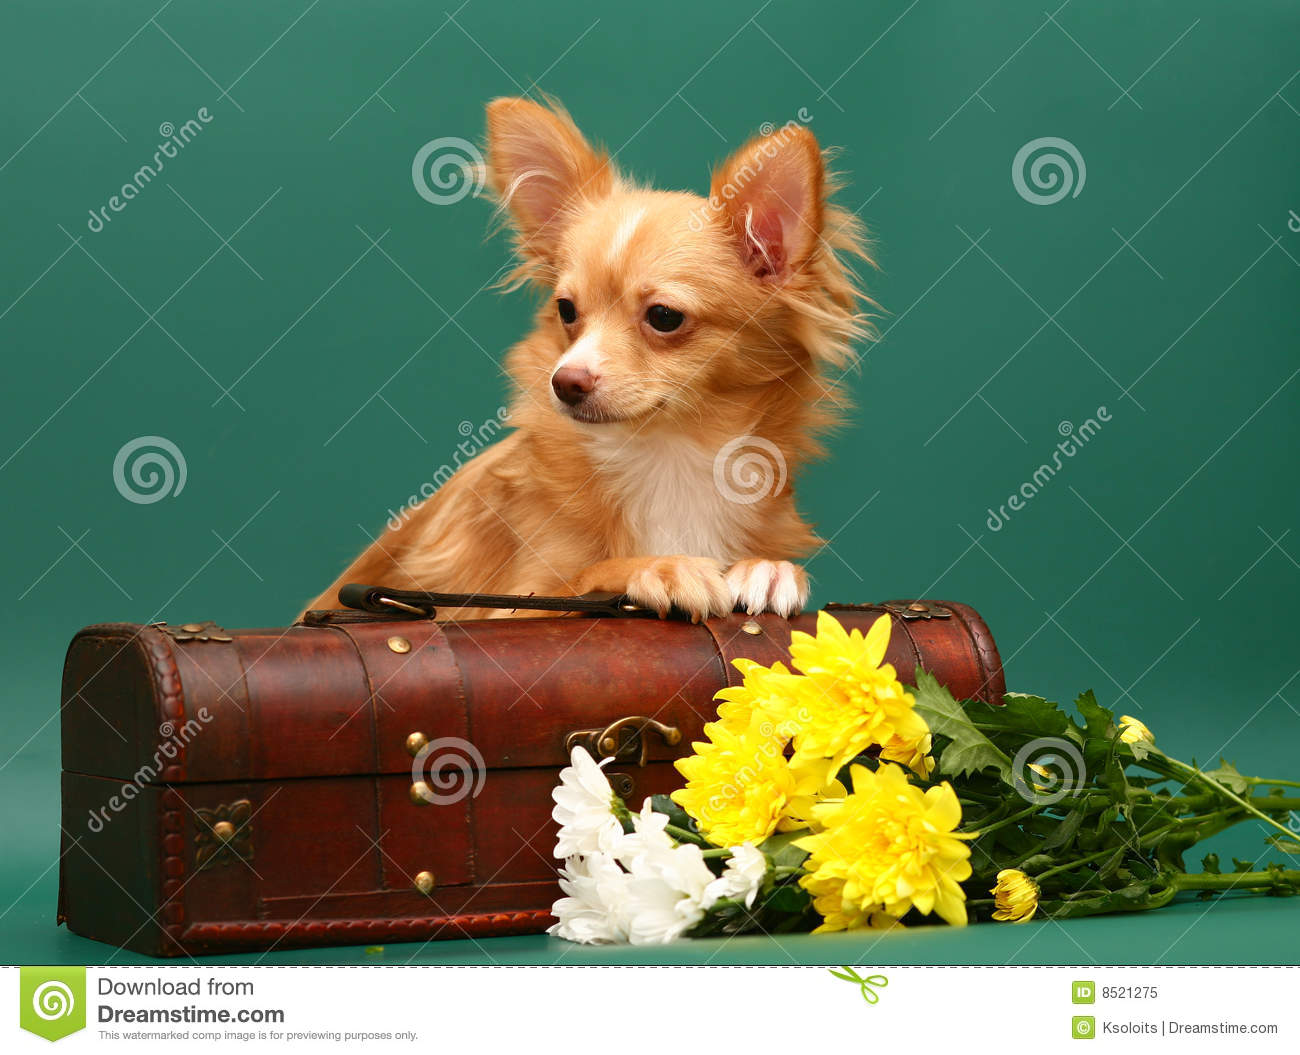 Dog Of Breed Chihuahua Is In A Trunk Royalty Free Stock